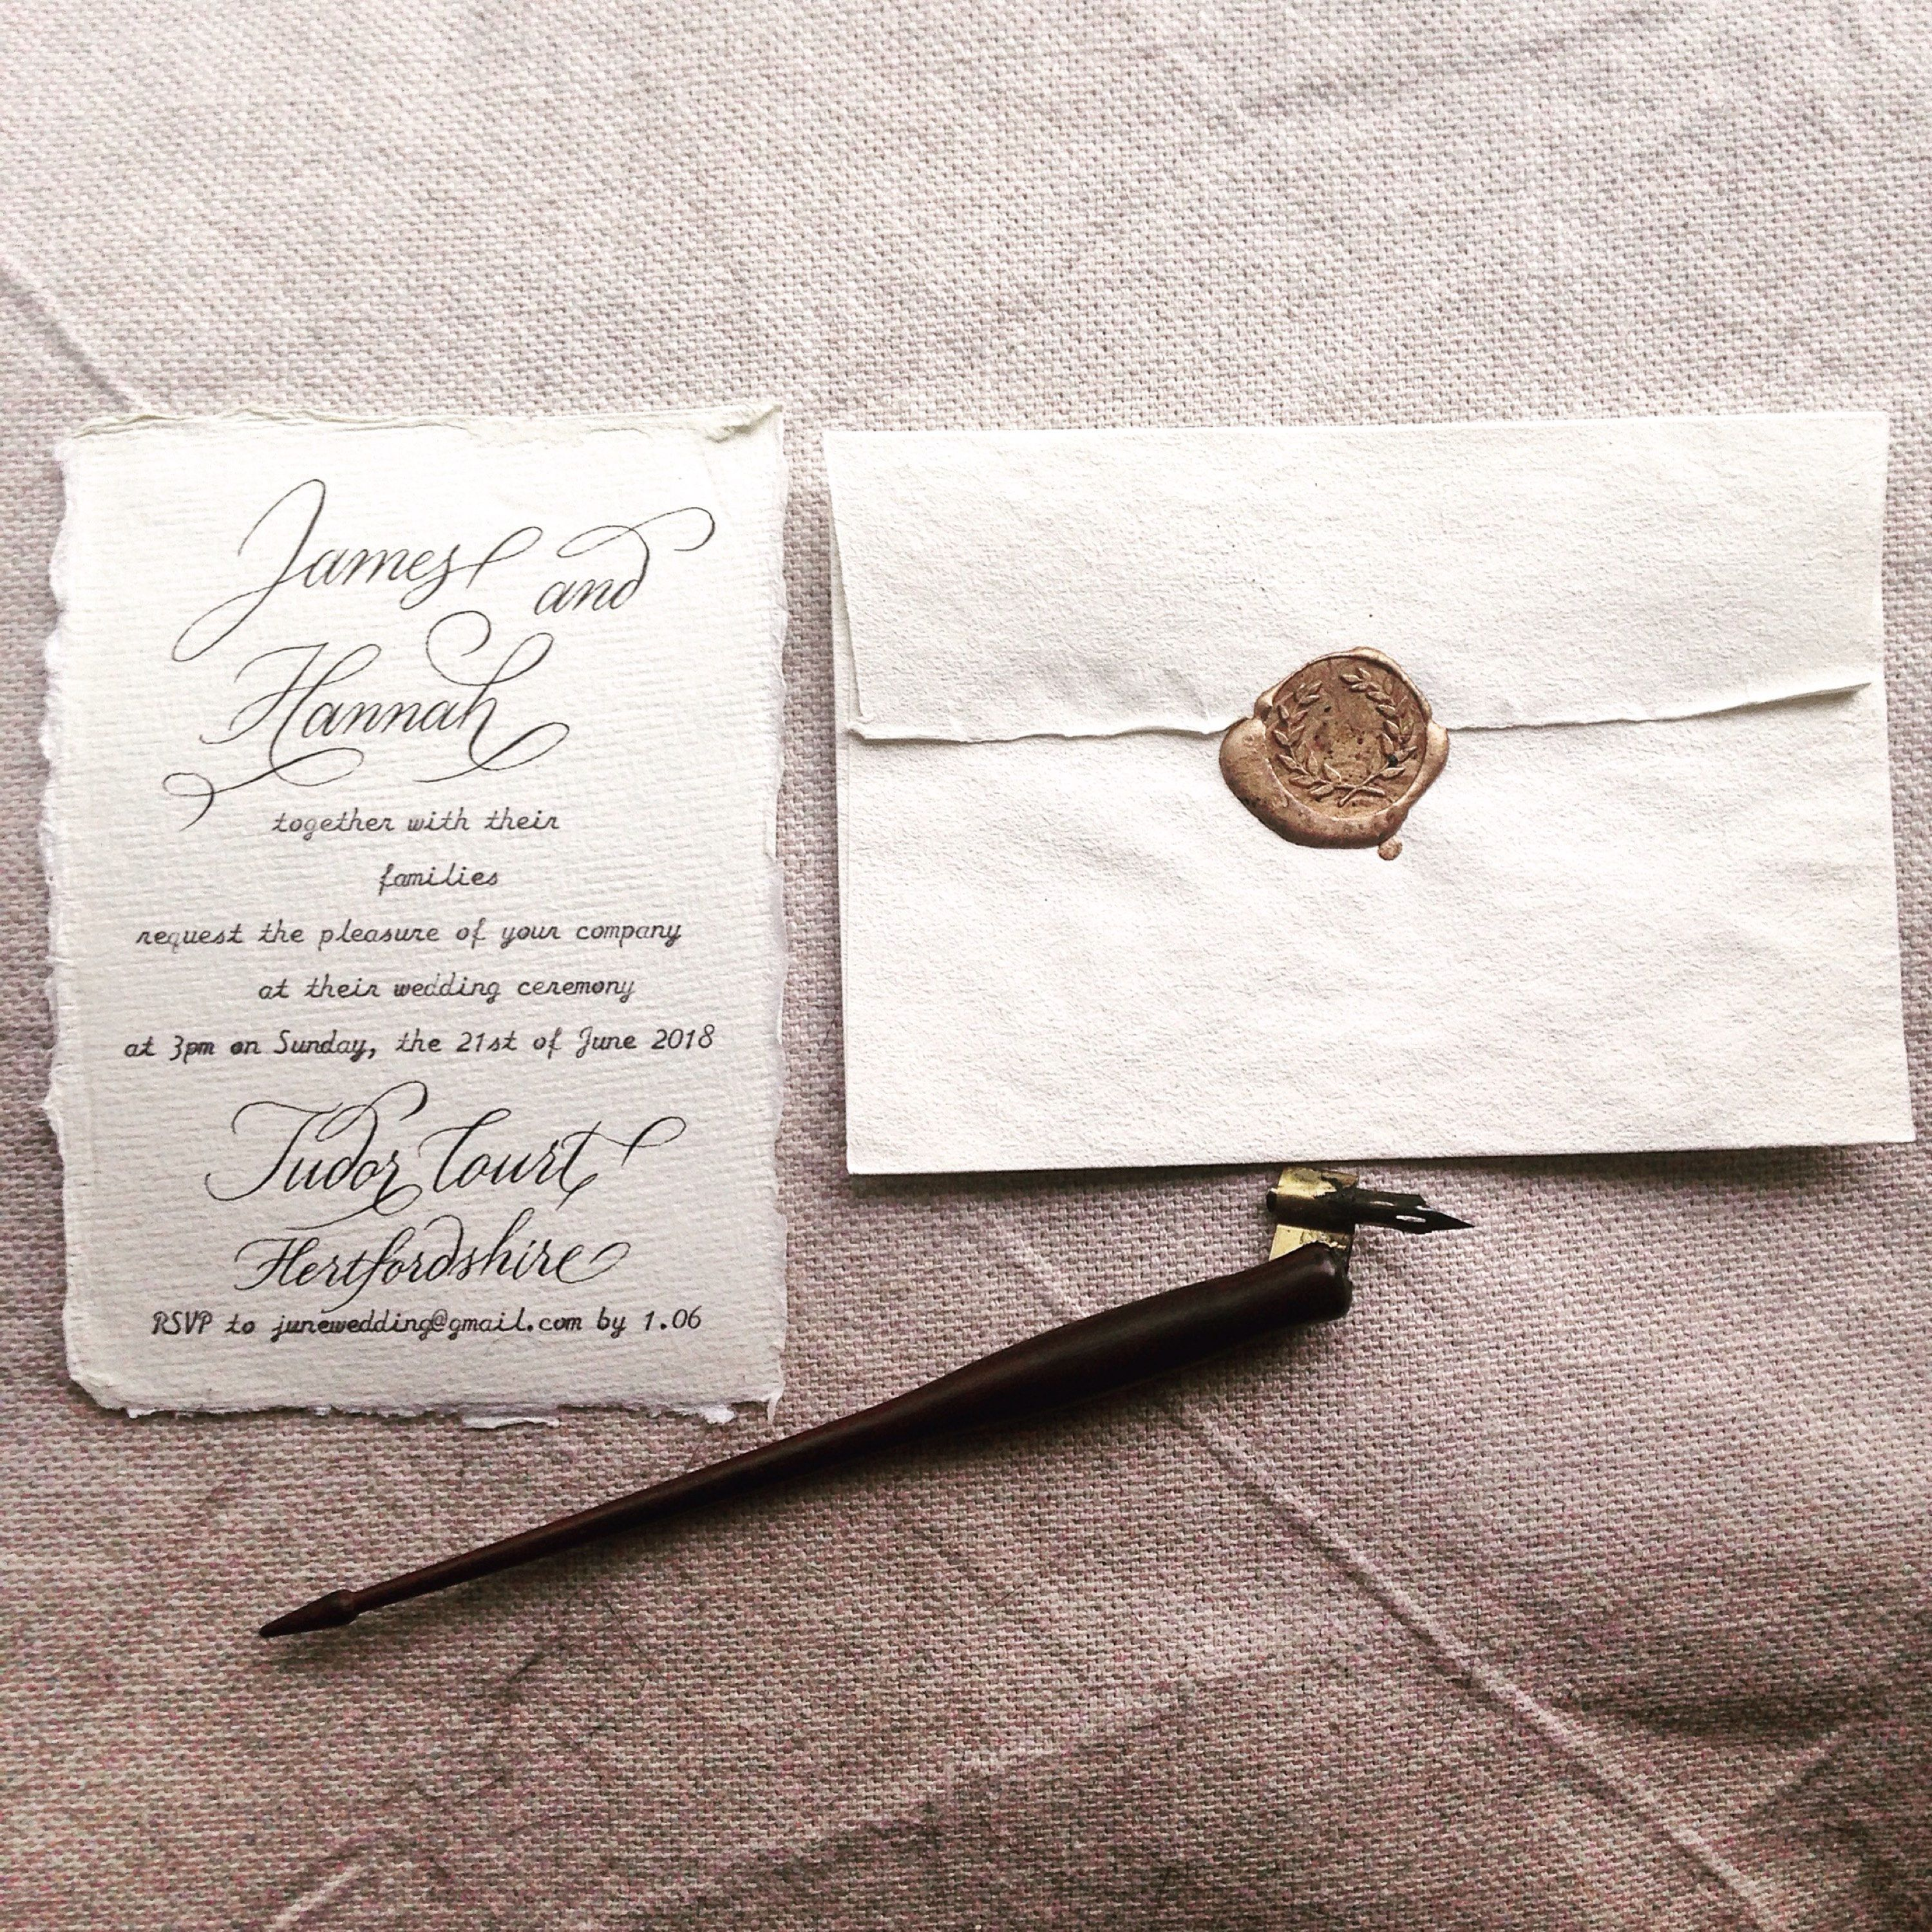 invitations wedding renewal vows ceremony%0A Custom calligraphy on handmade cotton paper for wedding invitations   invitation kits  envelope calligraphy for wedding  vow renewal  UK